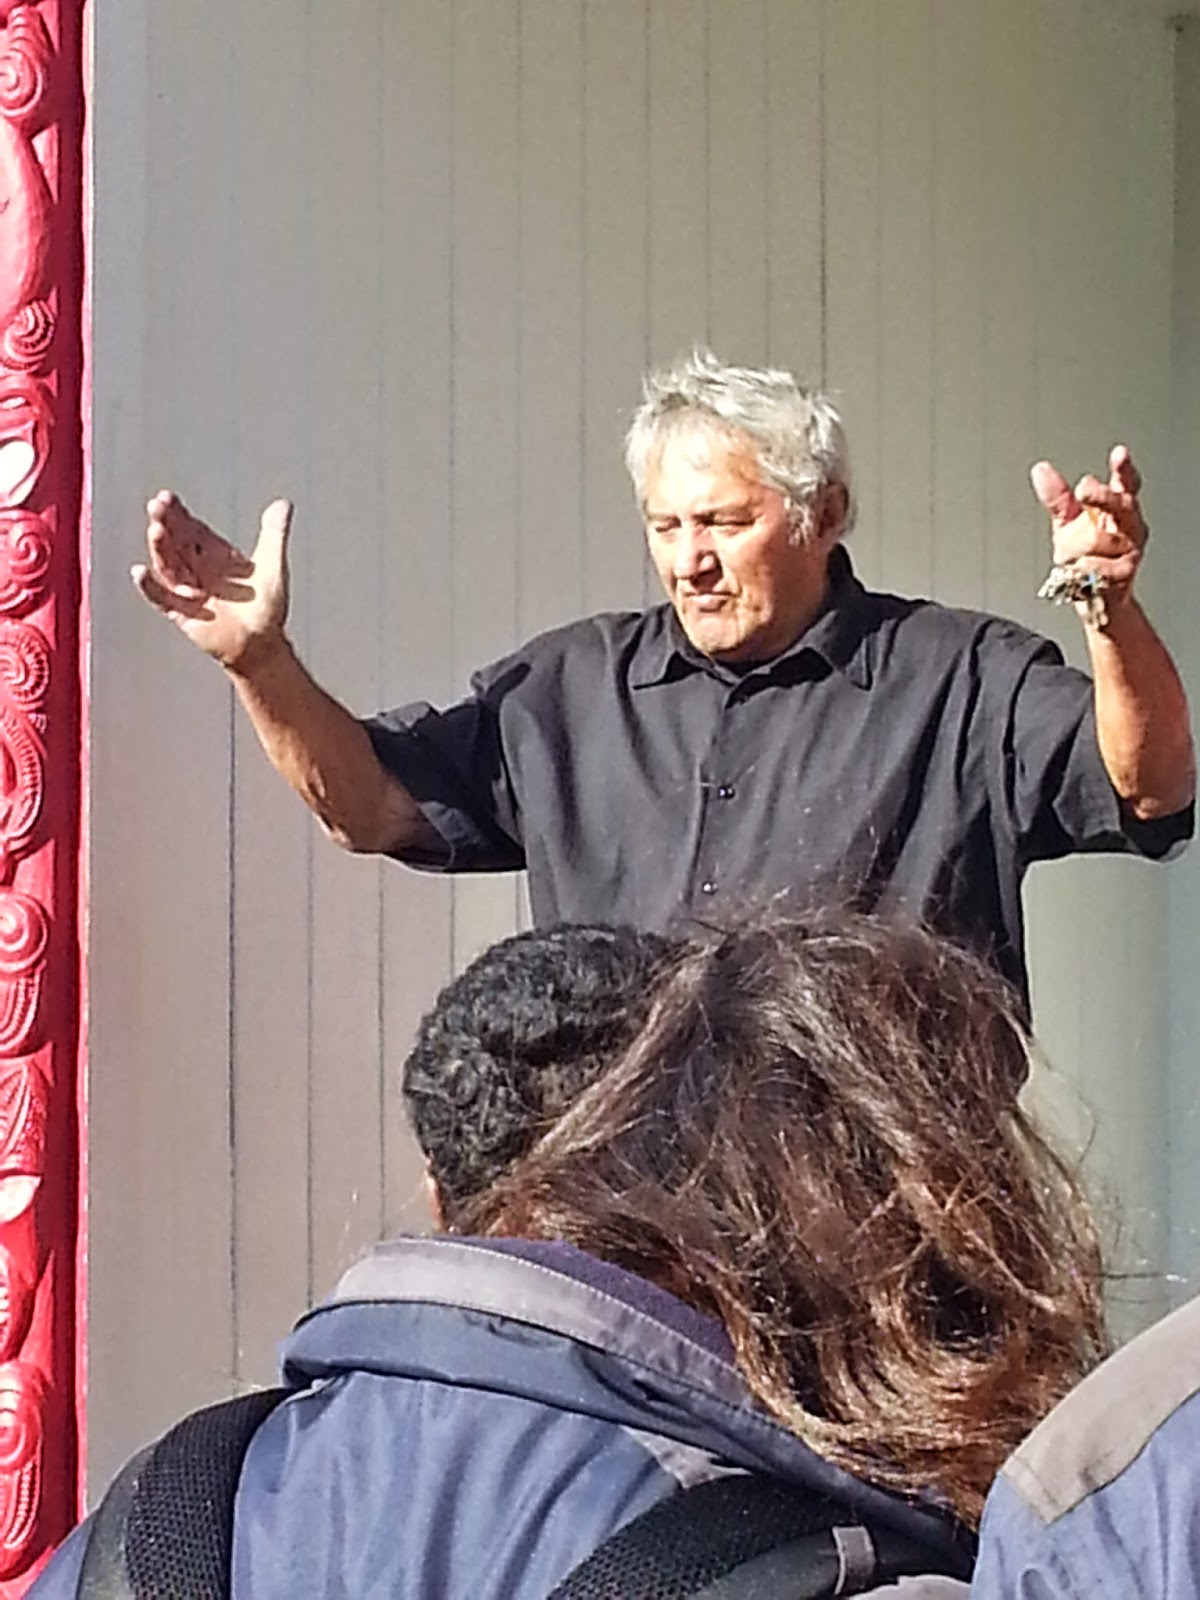 sad joke on a marae Resources edit 0 20 what are the themes and messages in the poem sad joke on a marae by apirana taylor slindsay wiki moore english wiki text review of 'sad joke on a marae essay 'sad joke' and 'the trick of standing upright here.